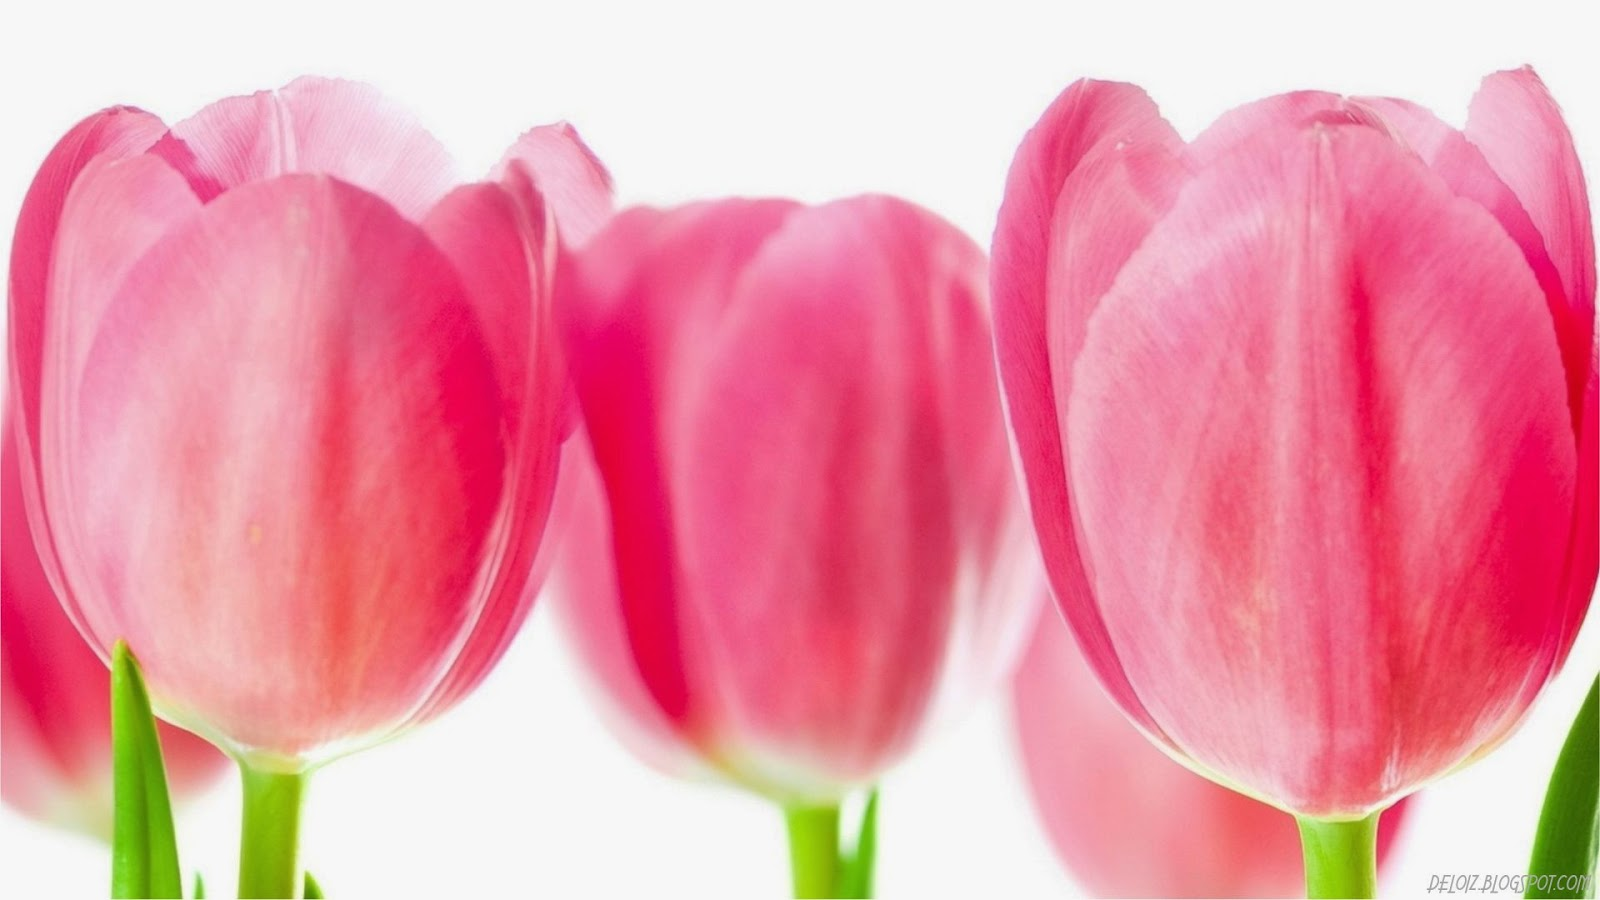 10 Wallpaper Bunga Tulip Pink  Deloiz Wallpaper